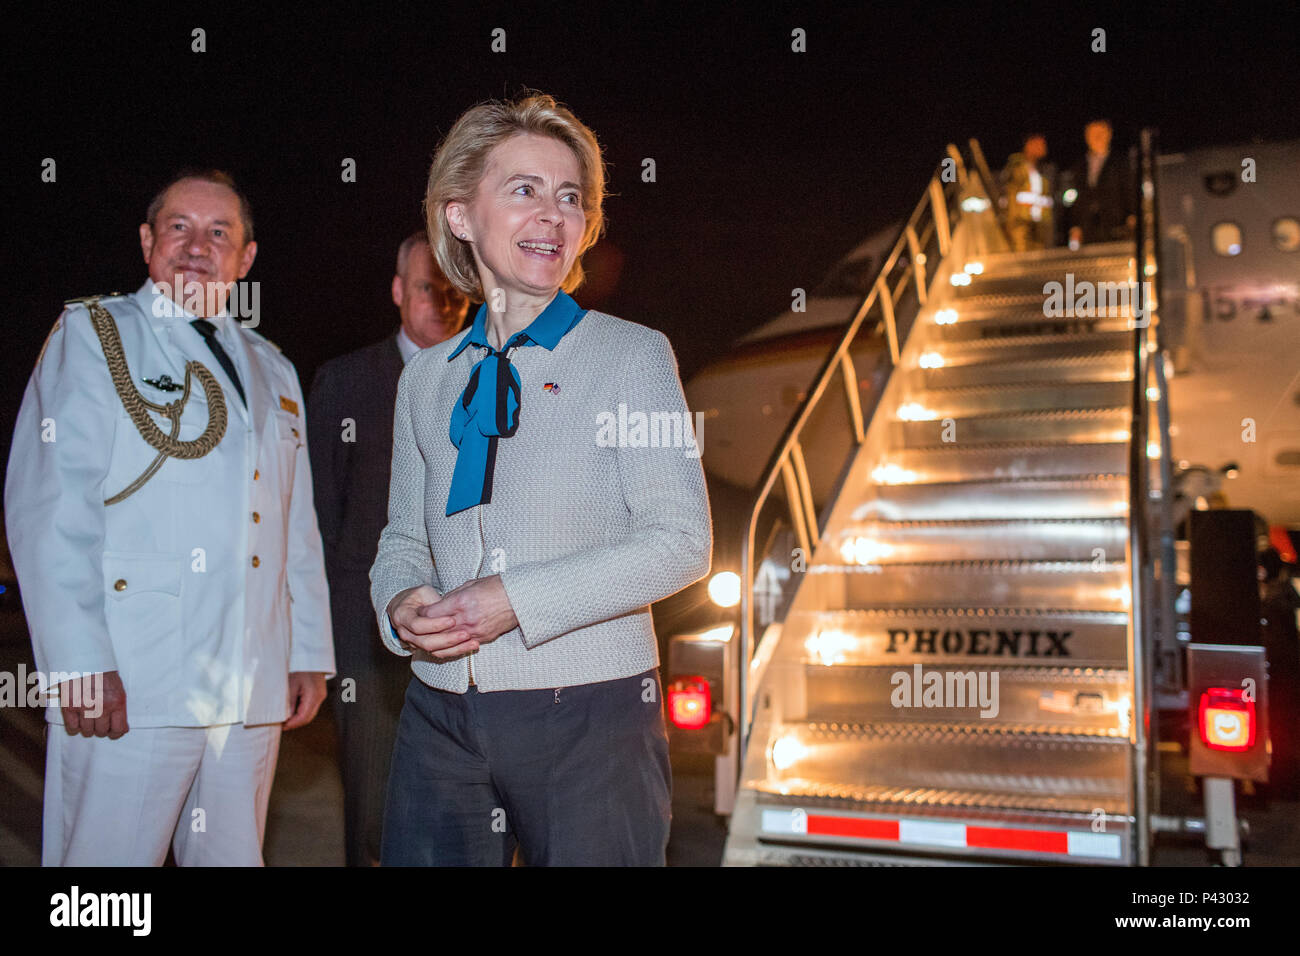 Washington, USA. 20th June, 2018. German Defence Minister Ursula von der Leyen of the Christian Democratic Union (CDU) is greeted at the airport by Boris Ruge (c) and defence attache Thomas Ernst. Von der Leyen will be in the US for two days to speak with US Defence Secretary Mattis. Credit: Jens Büttner/dpa-Zentralbild/dpa/Alamy Live News - Stock Image